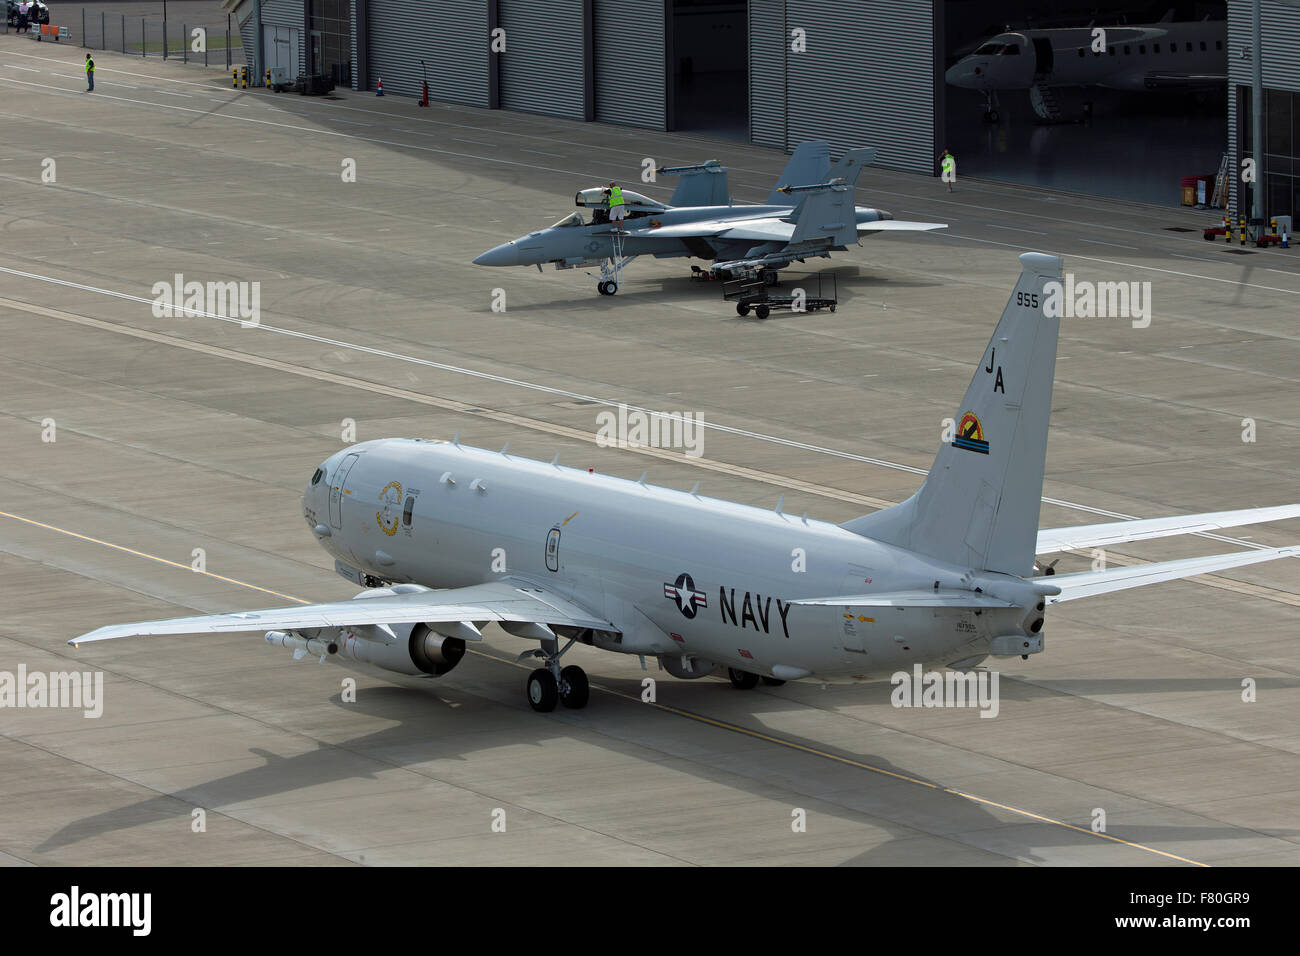 Boeing P-8 Orion maritime patrol aircraft & Boeing F/A-18F Super Hornet - Stock Image